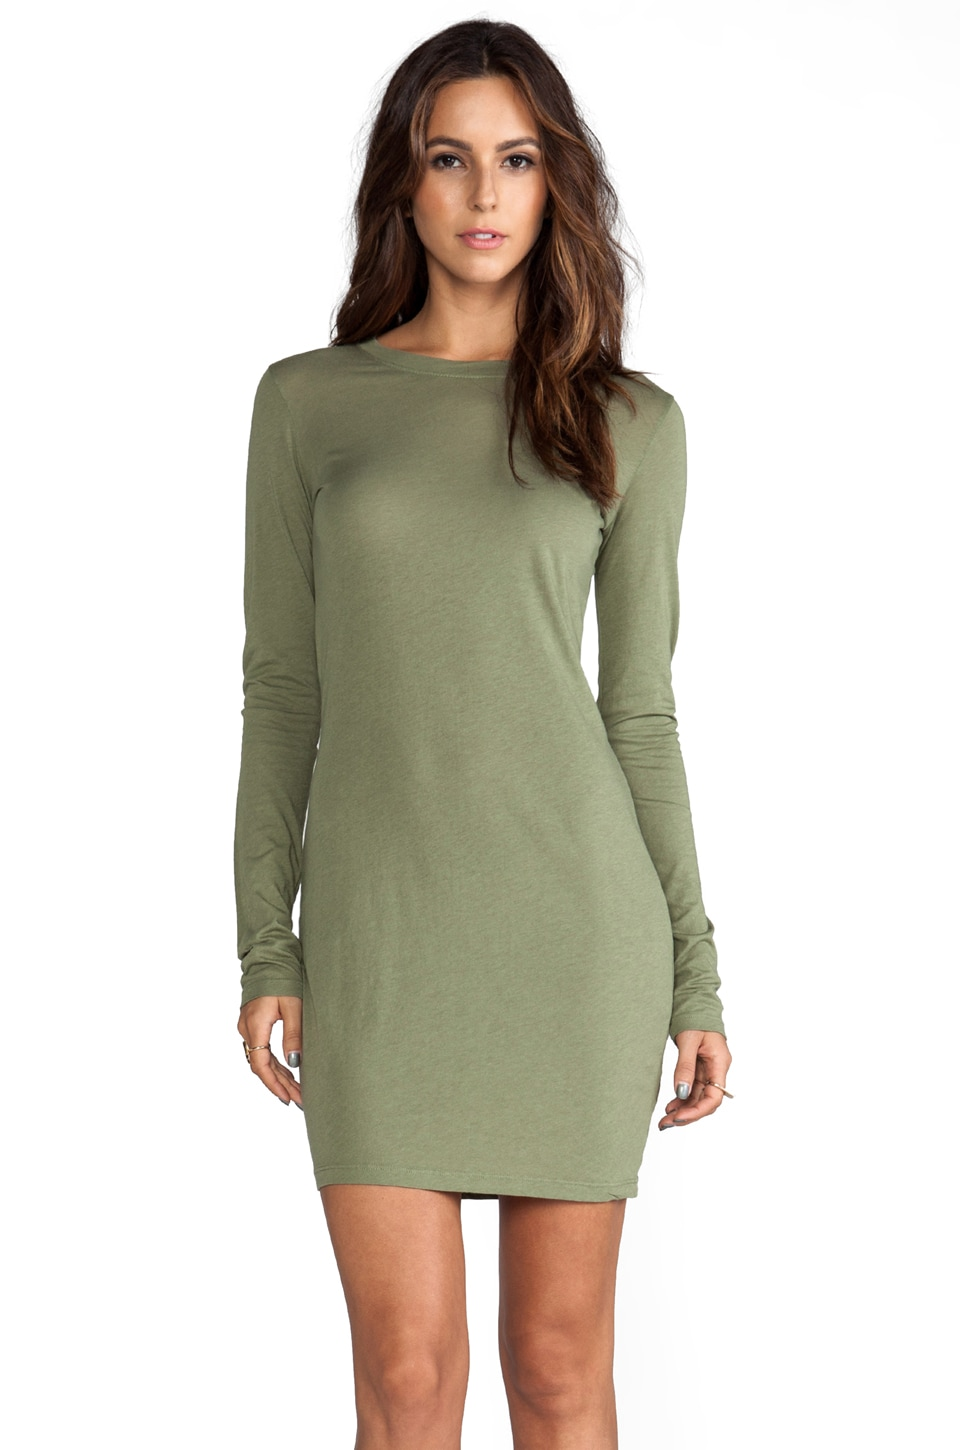 Daftbird Long Sleeve Mini Dress in Sage